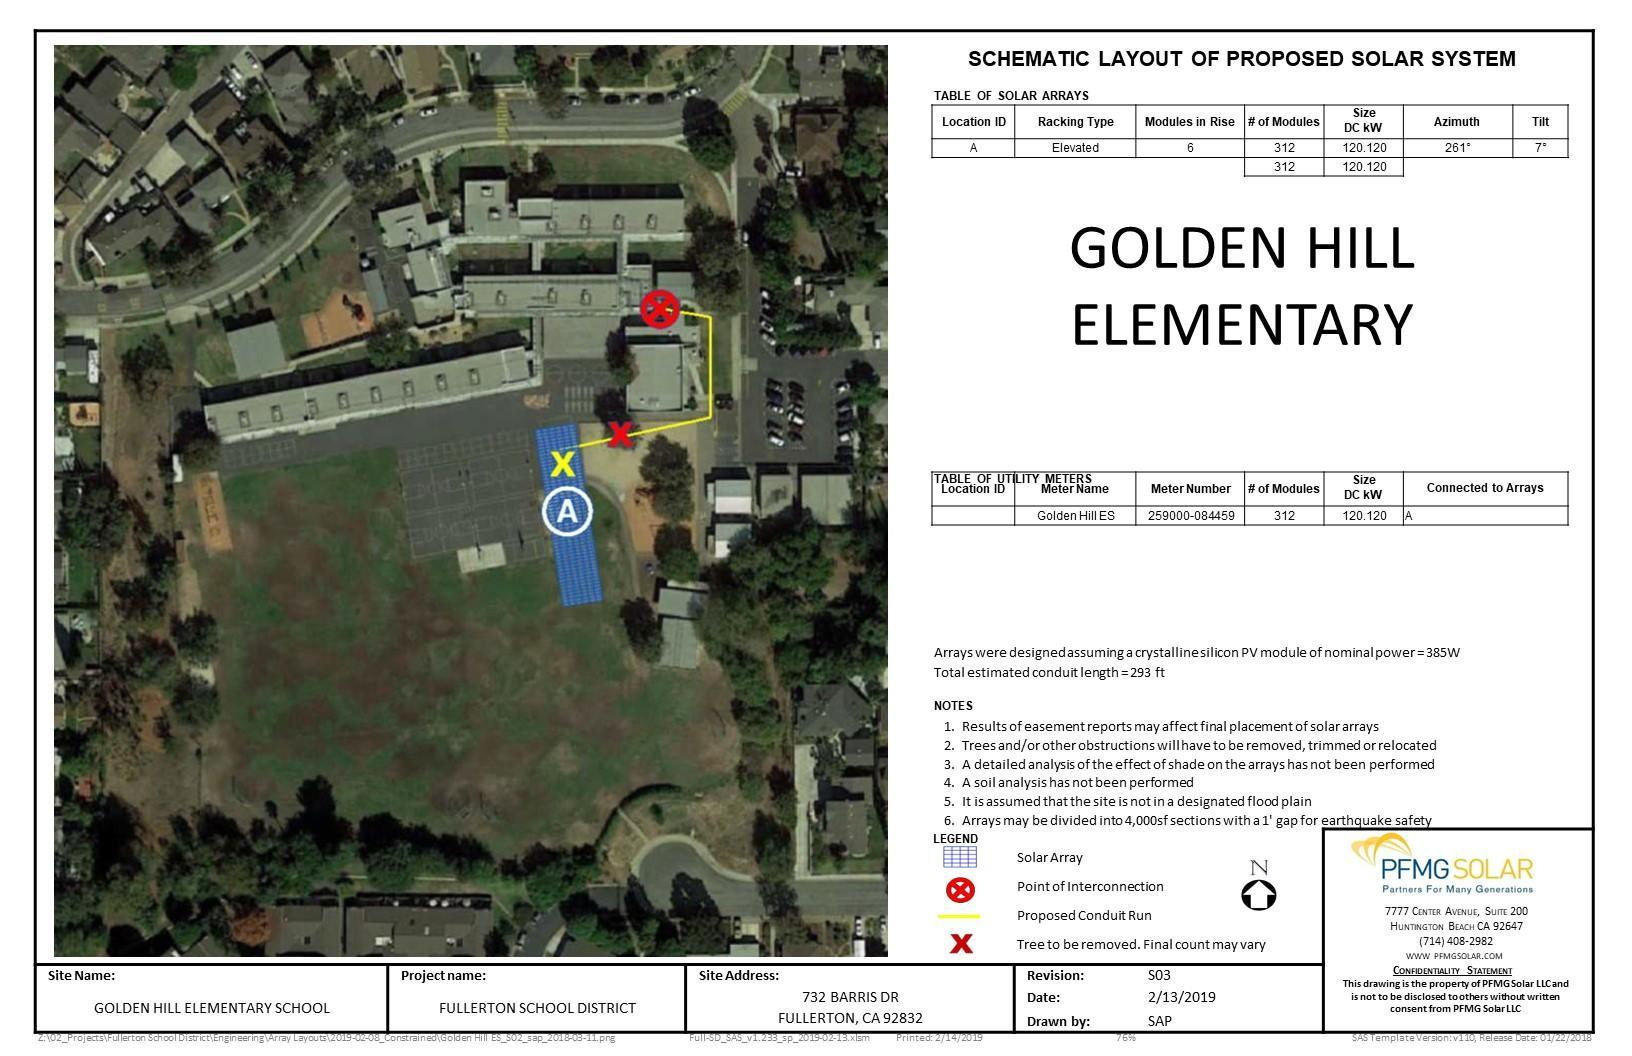 Golden Hill Elementary Schematic Layout of Proposed Solar System